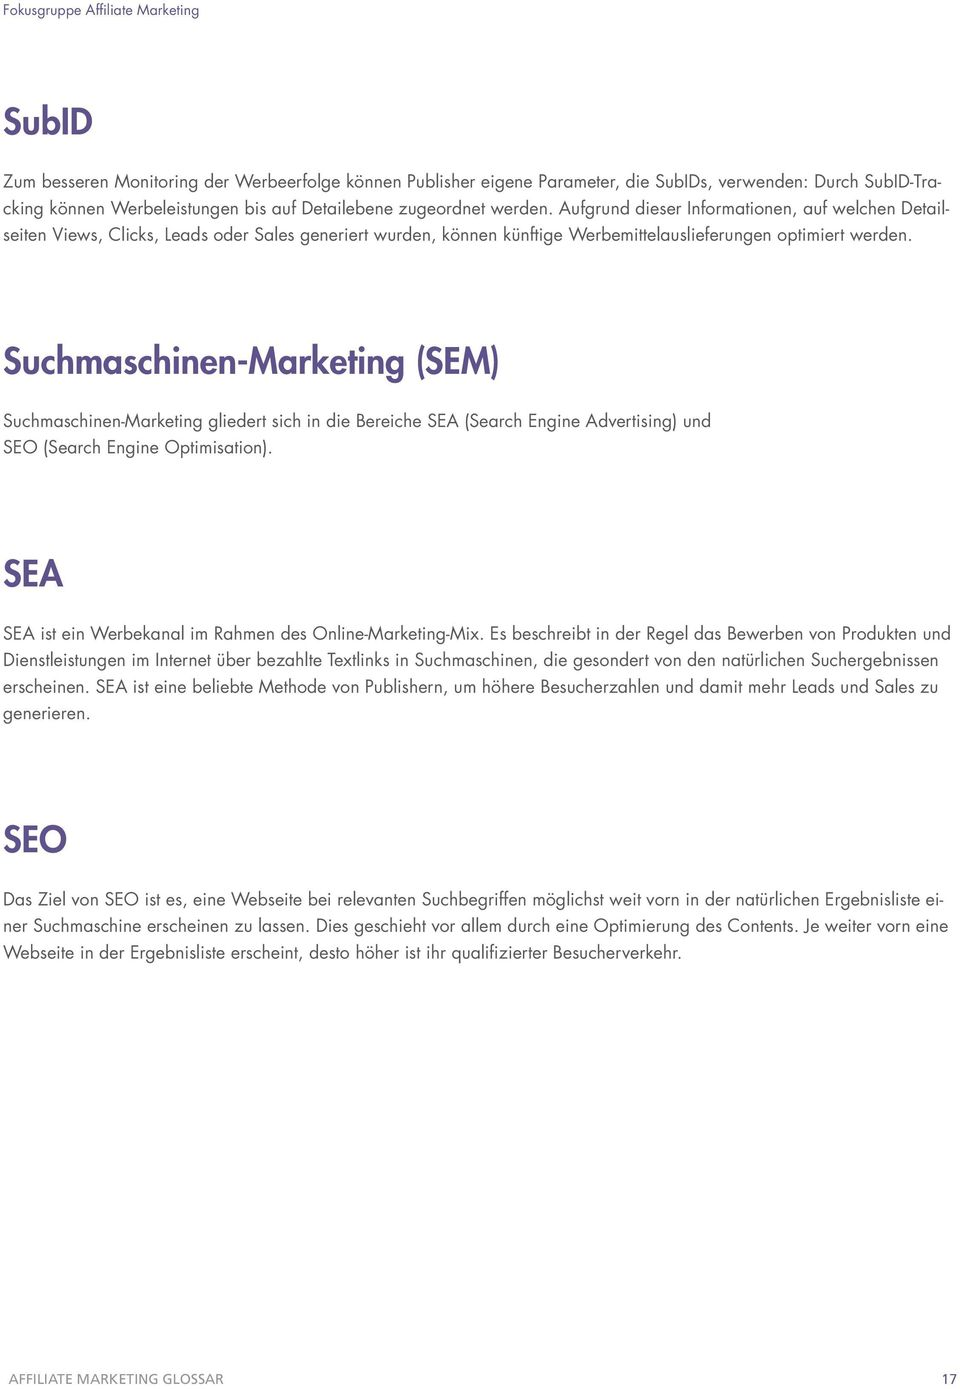 Suchmaschinen-Marketing (SEM) Suchmaschinen-Marketing gliedert sich in die Bereiche SEA (Search Engine Advertising) und SEO (Search Engine Optimisation).